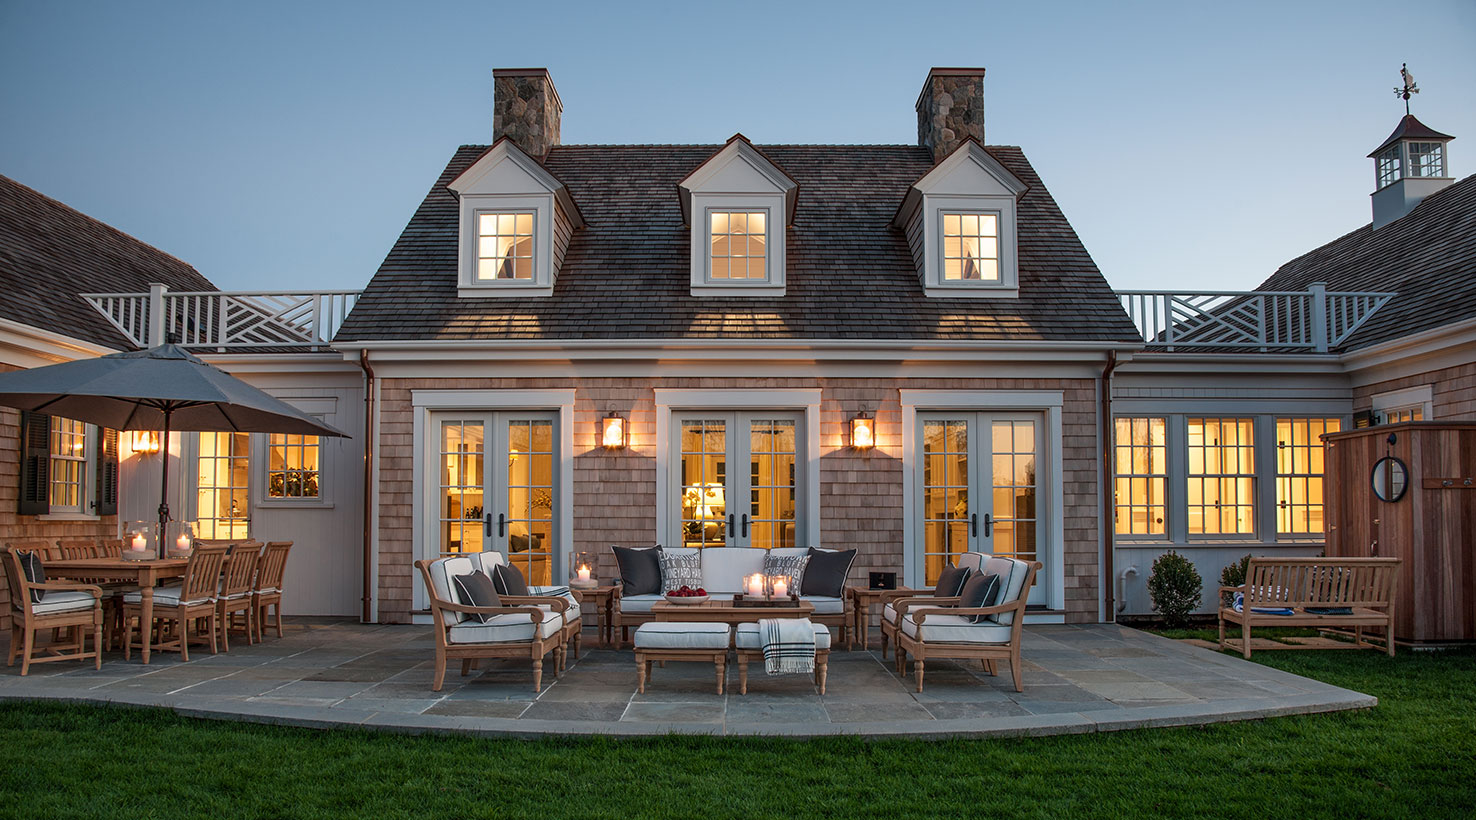 Image gallery hgtv dream home 2015 for Www dreamhome